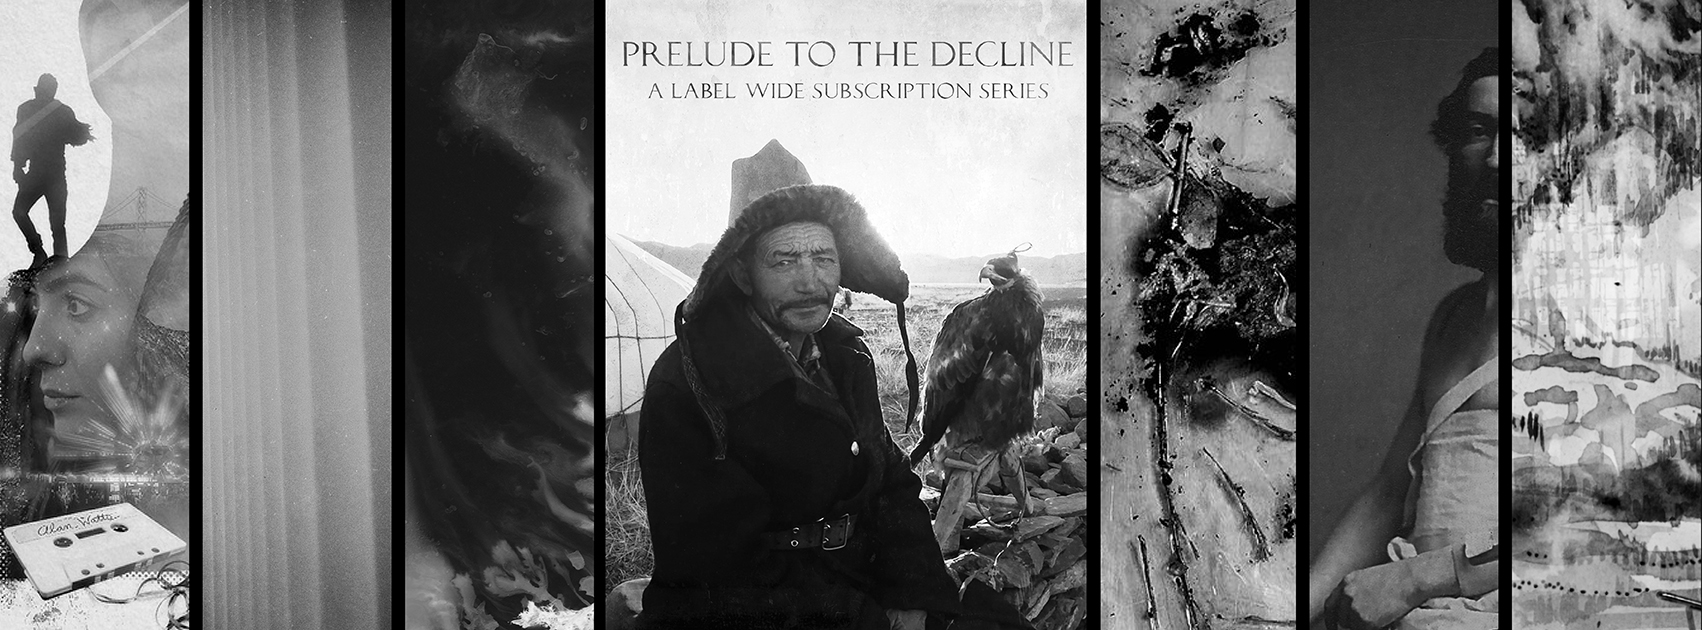 Lost Tribe Sound - Prelude to the Decline - Subscription Series